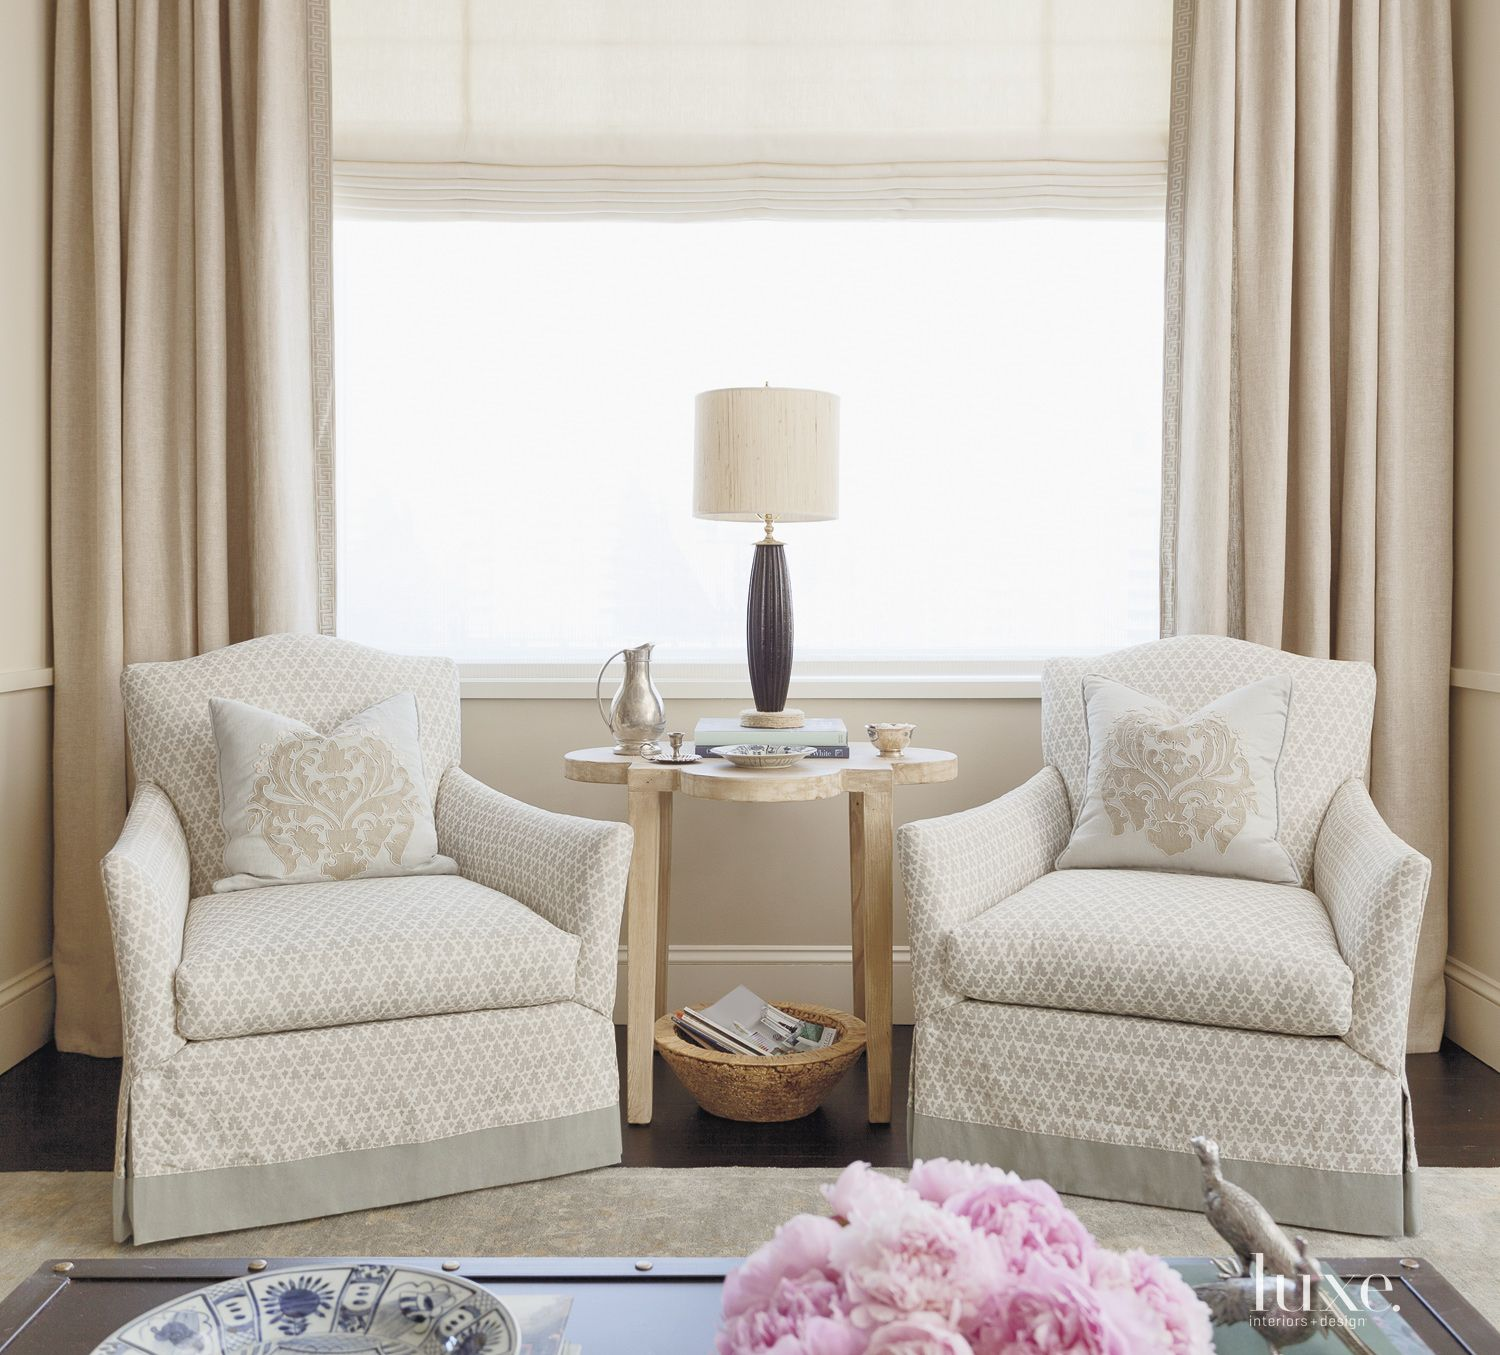 Eclectic Neutral Seating Area with Damask Pillows